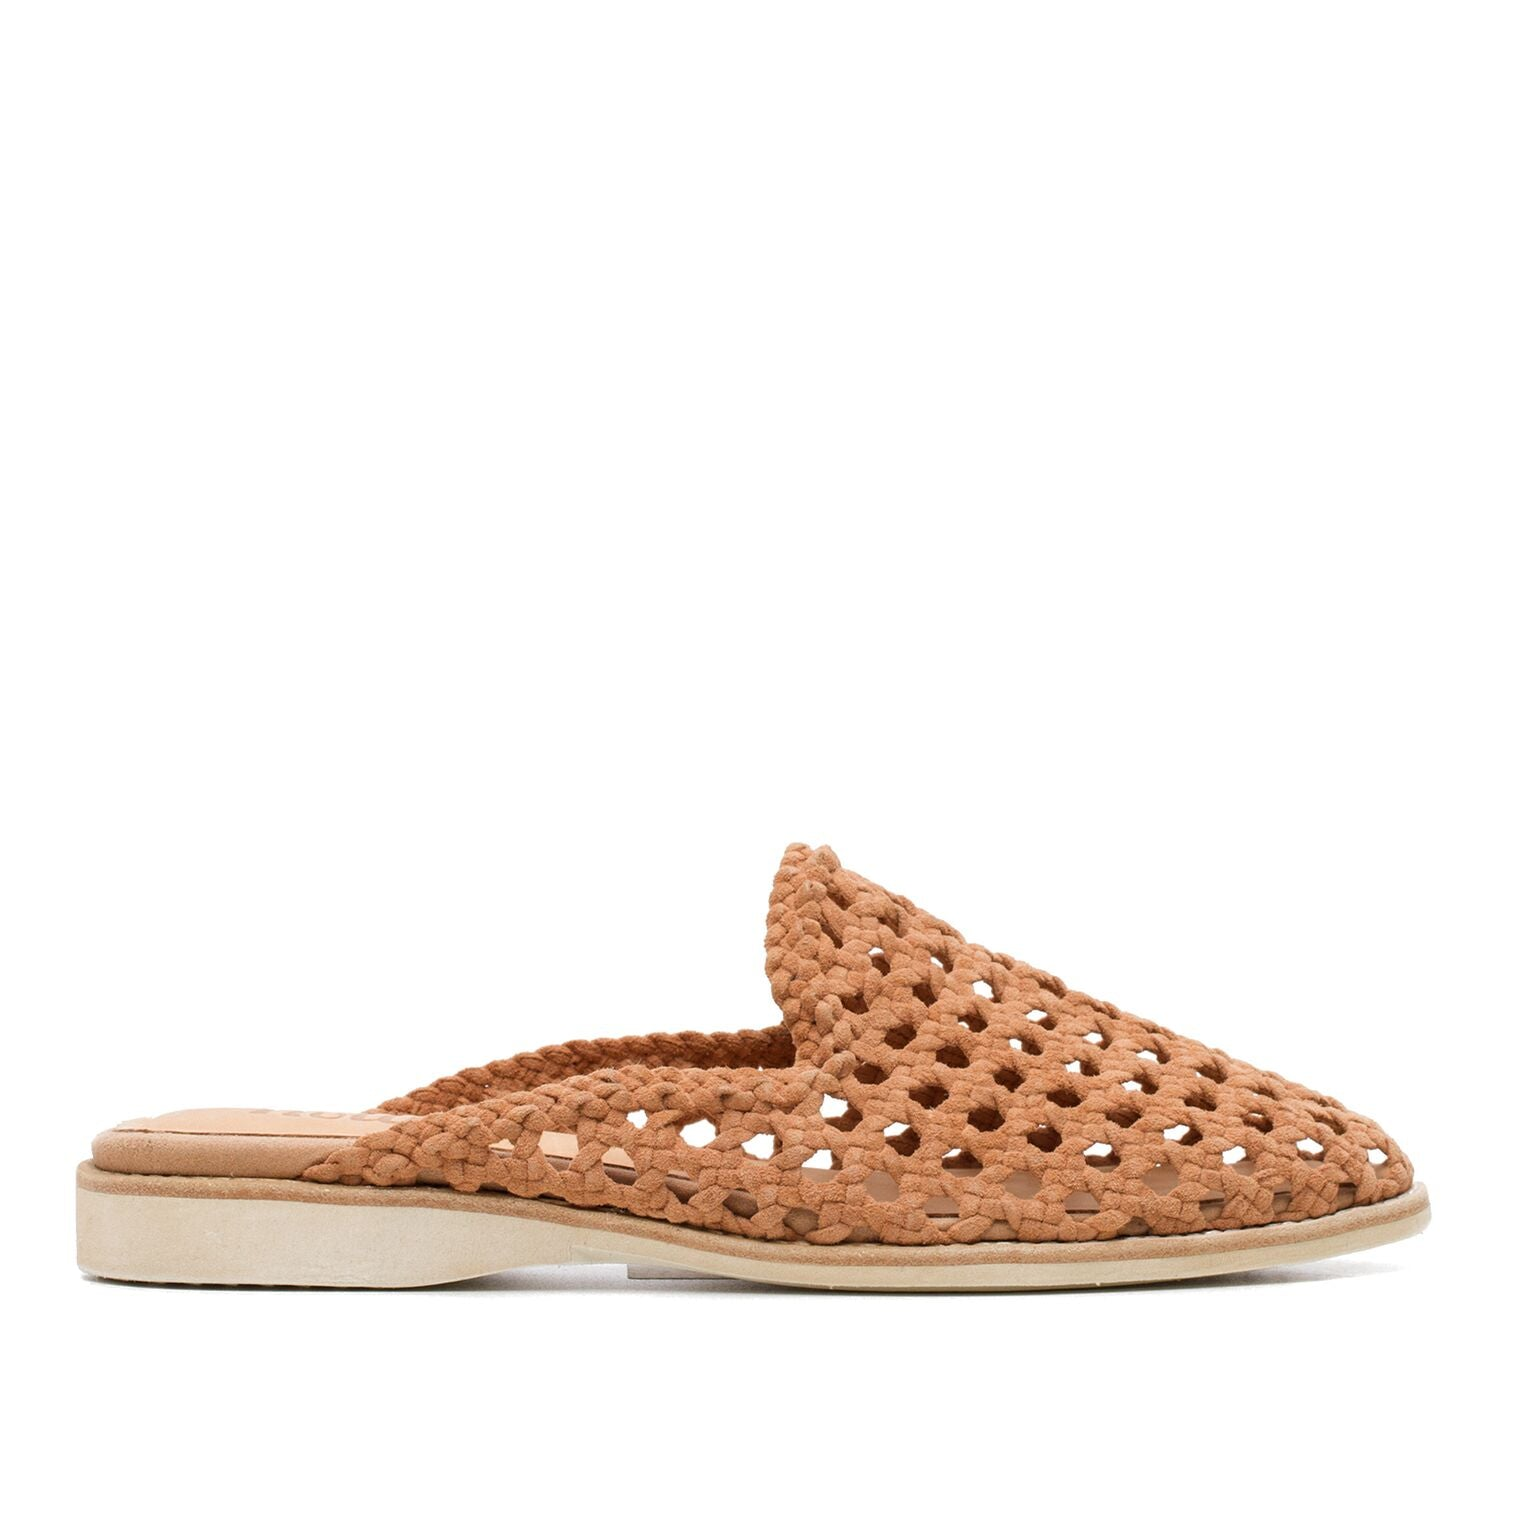 Rollie Madison Mule Open Weave in Camel